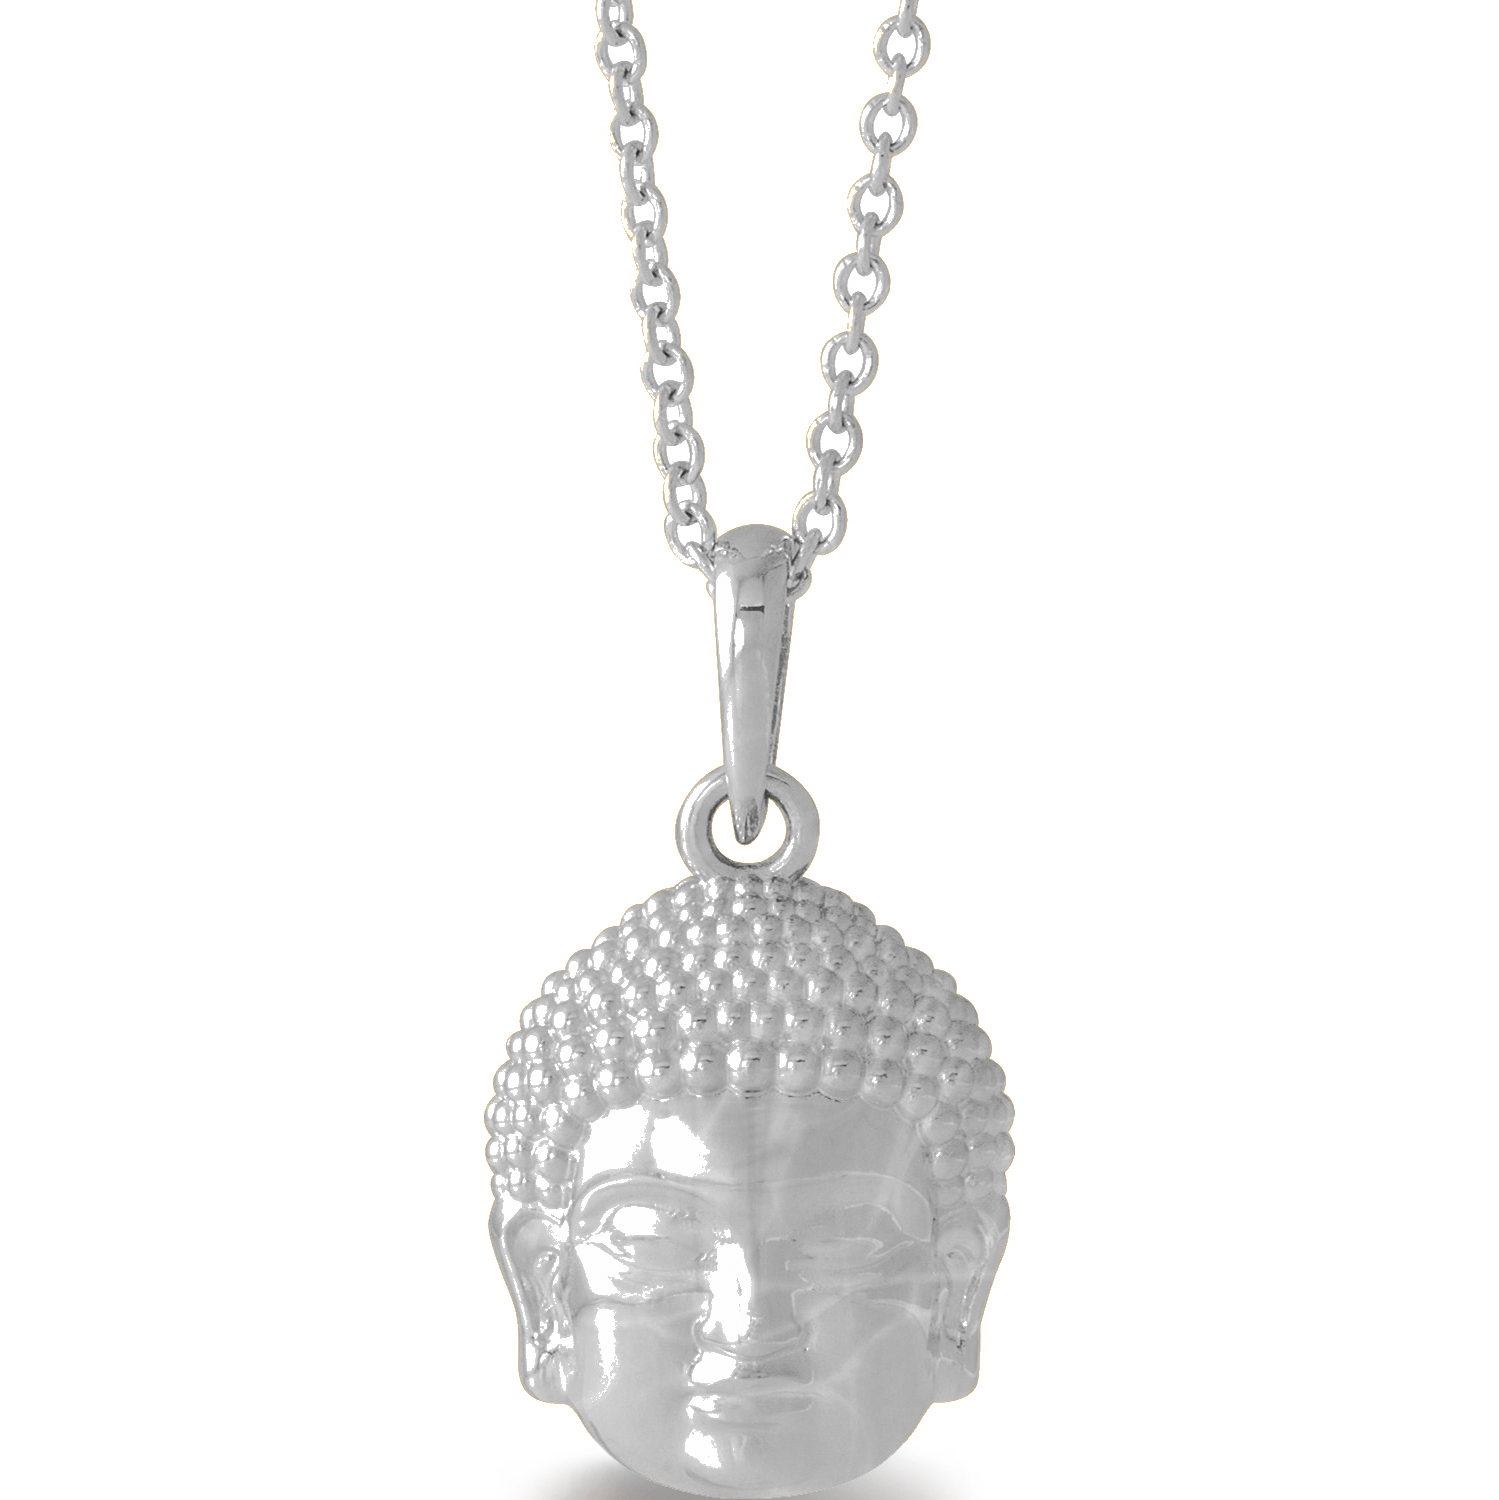 Buddha Head Pendant Necklace Sterling Silver